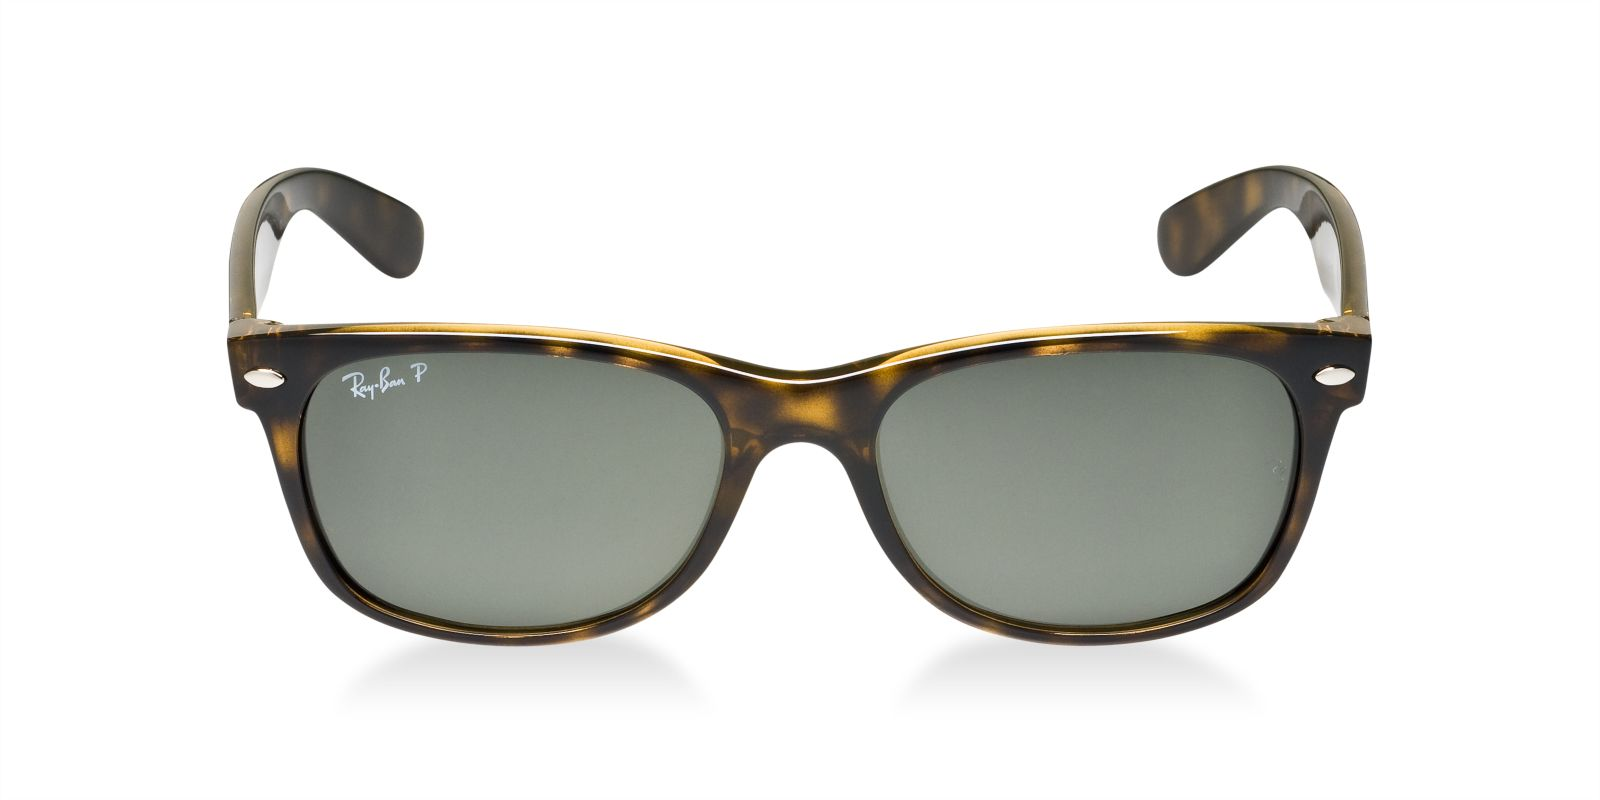 30f9b92dfa684 ... get previous next. previous next. ray ban rb2132 902 58 tortoise  polarized new wayfarer